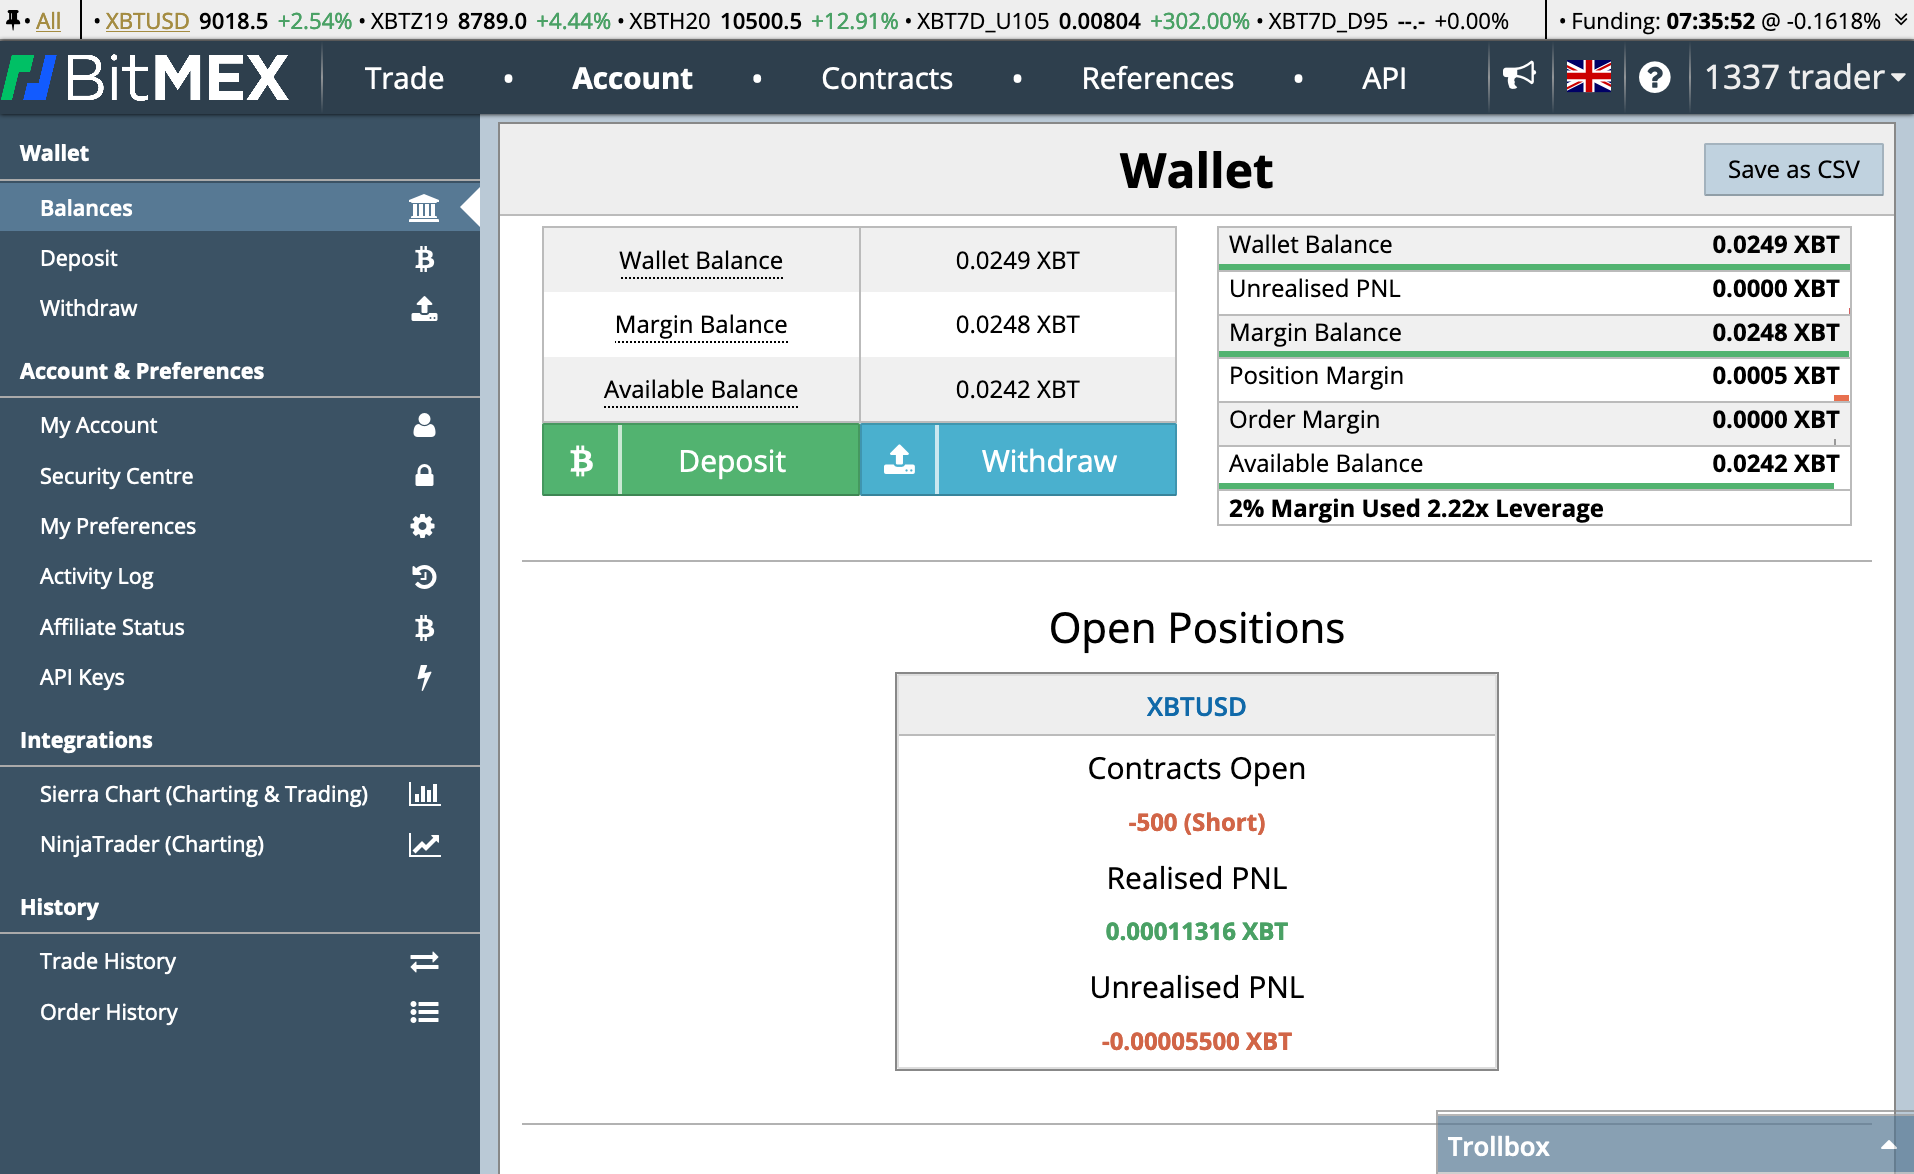 Screenshot of the Testnet interface with a $500 contract open